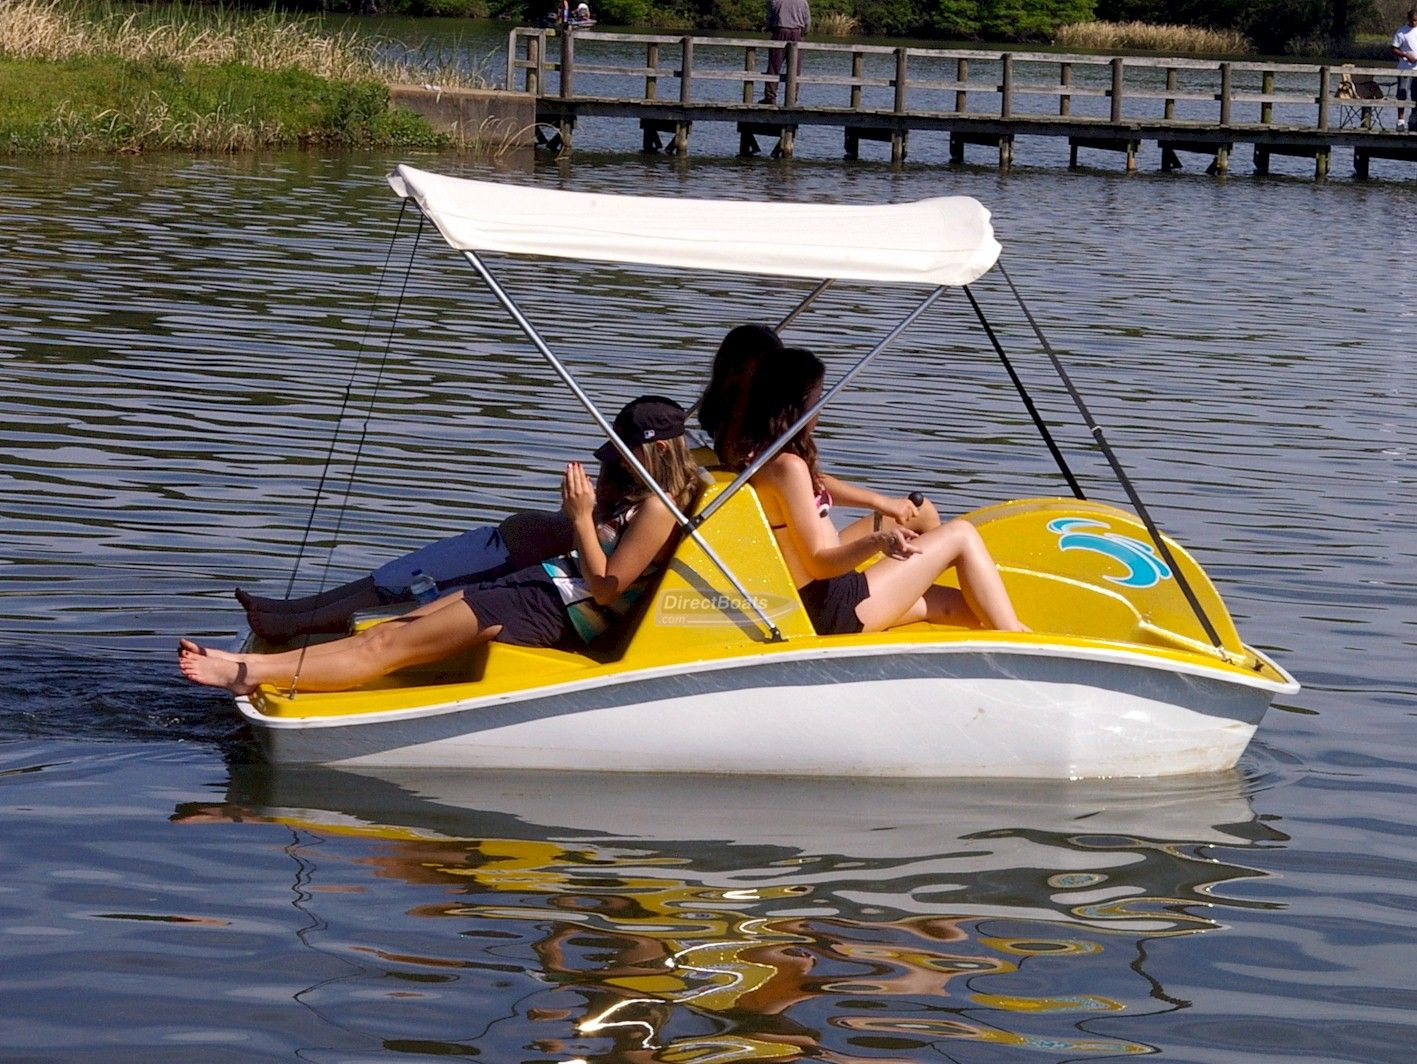 Electric Slide Self Bailing Pedal Boat & 1stdirect_2243_42074862 1417×1064 pixels | Lakehouse | Pinterest ...